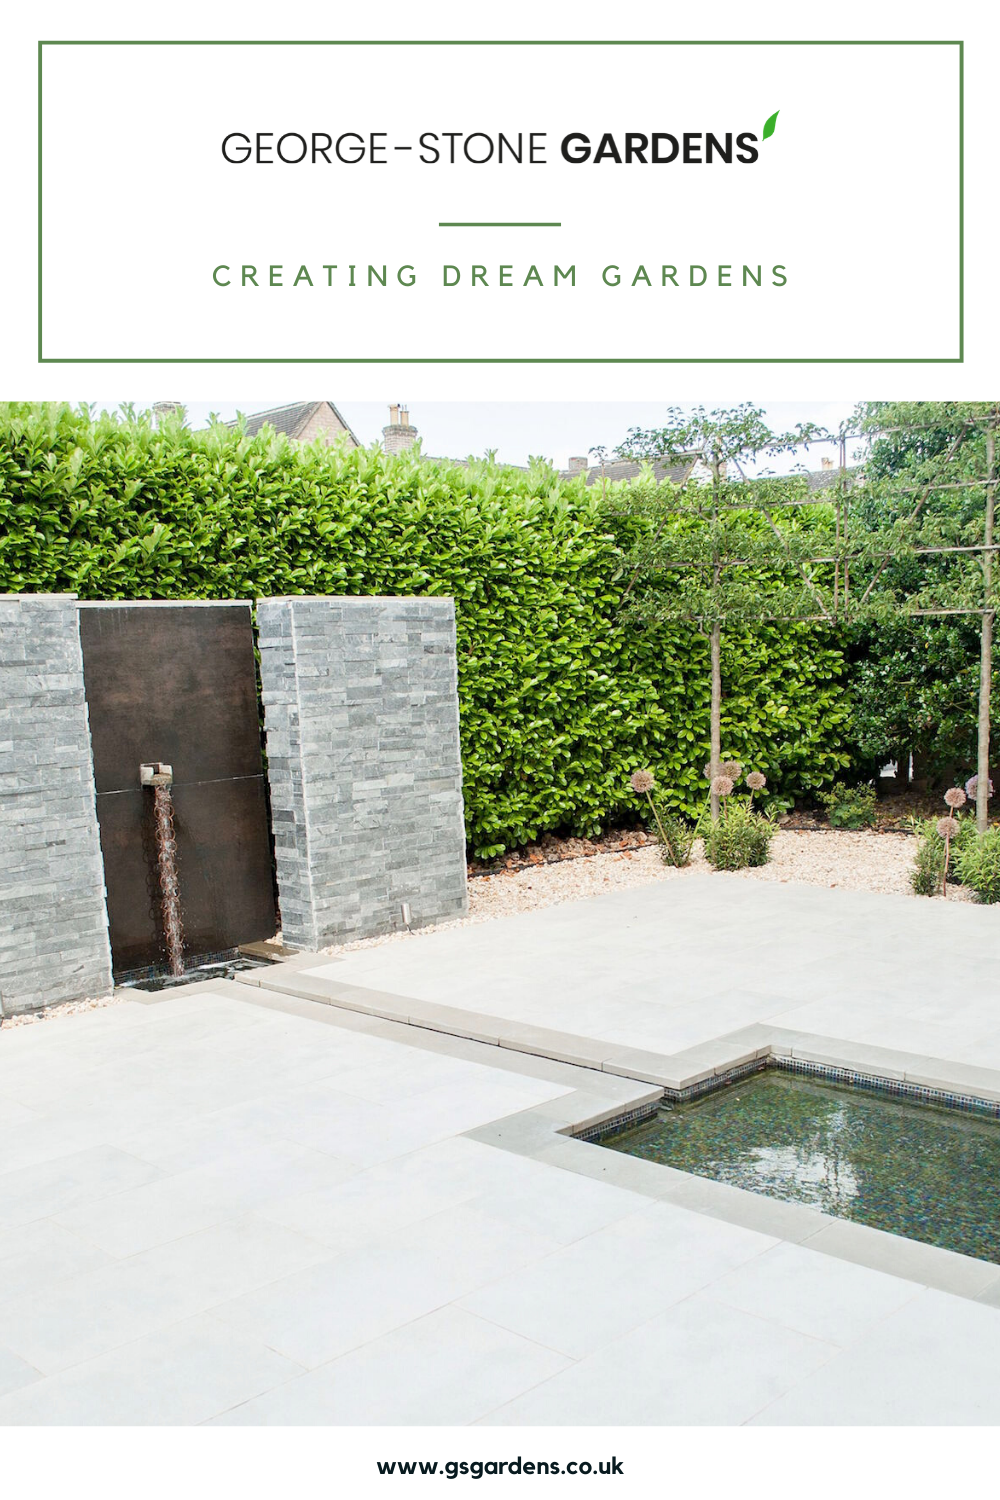 We created a beautiful space in this hotel garden that would be suitable as an outdoor wedding venue. #waterfeatures #commercialgardendesign #gardenlandscaping